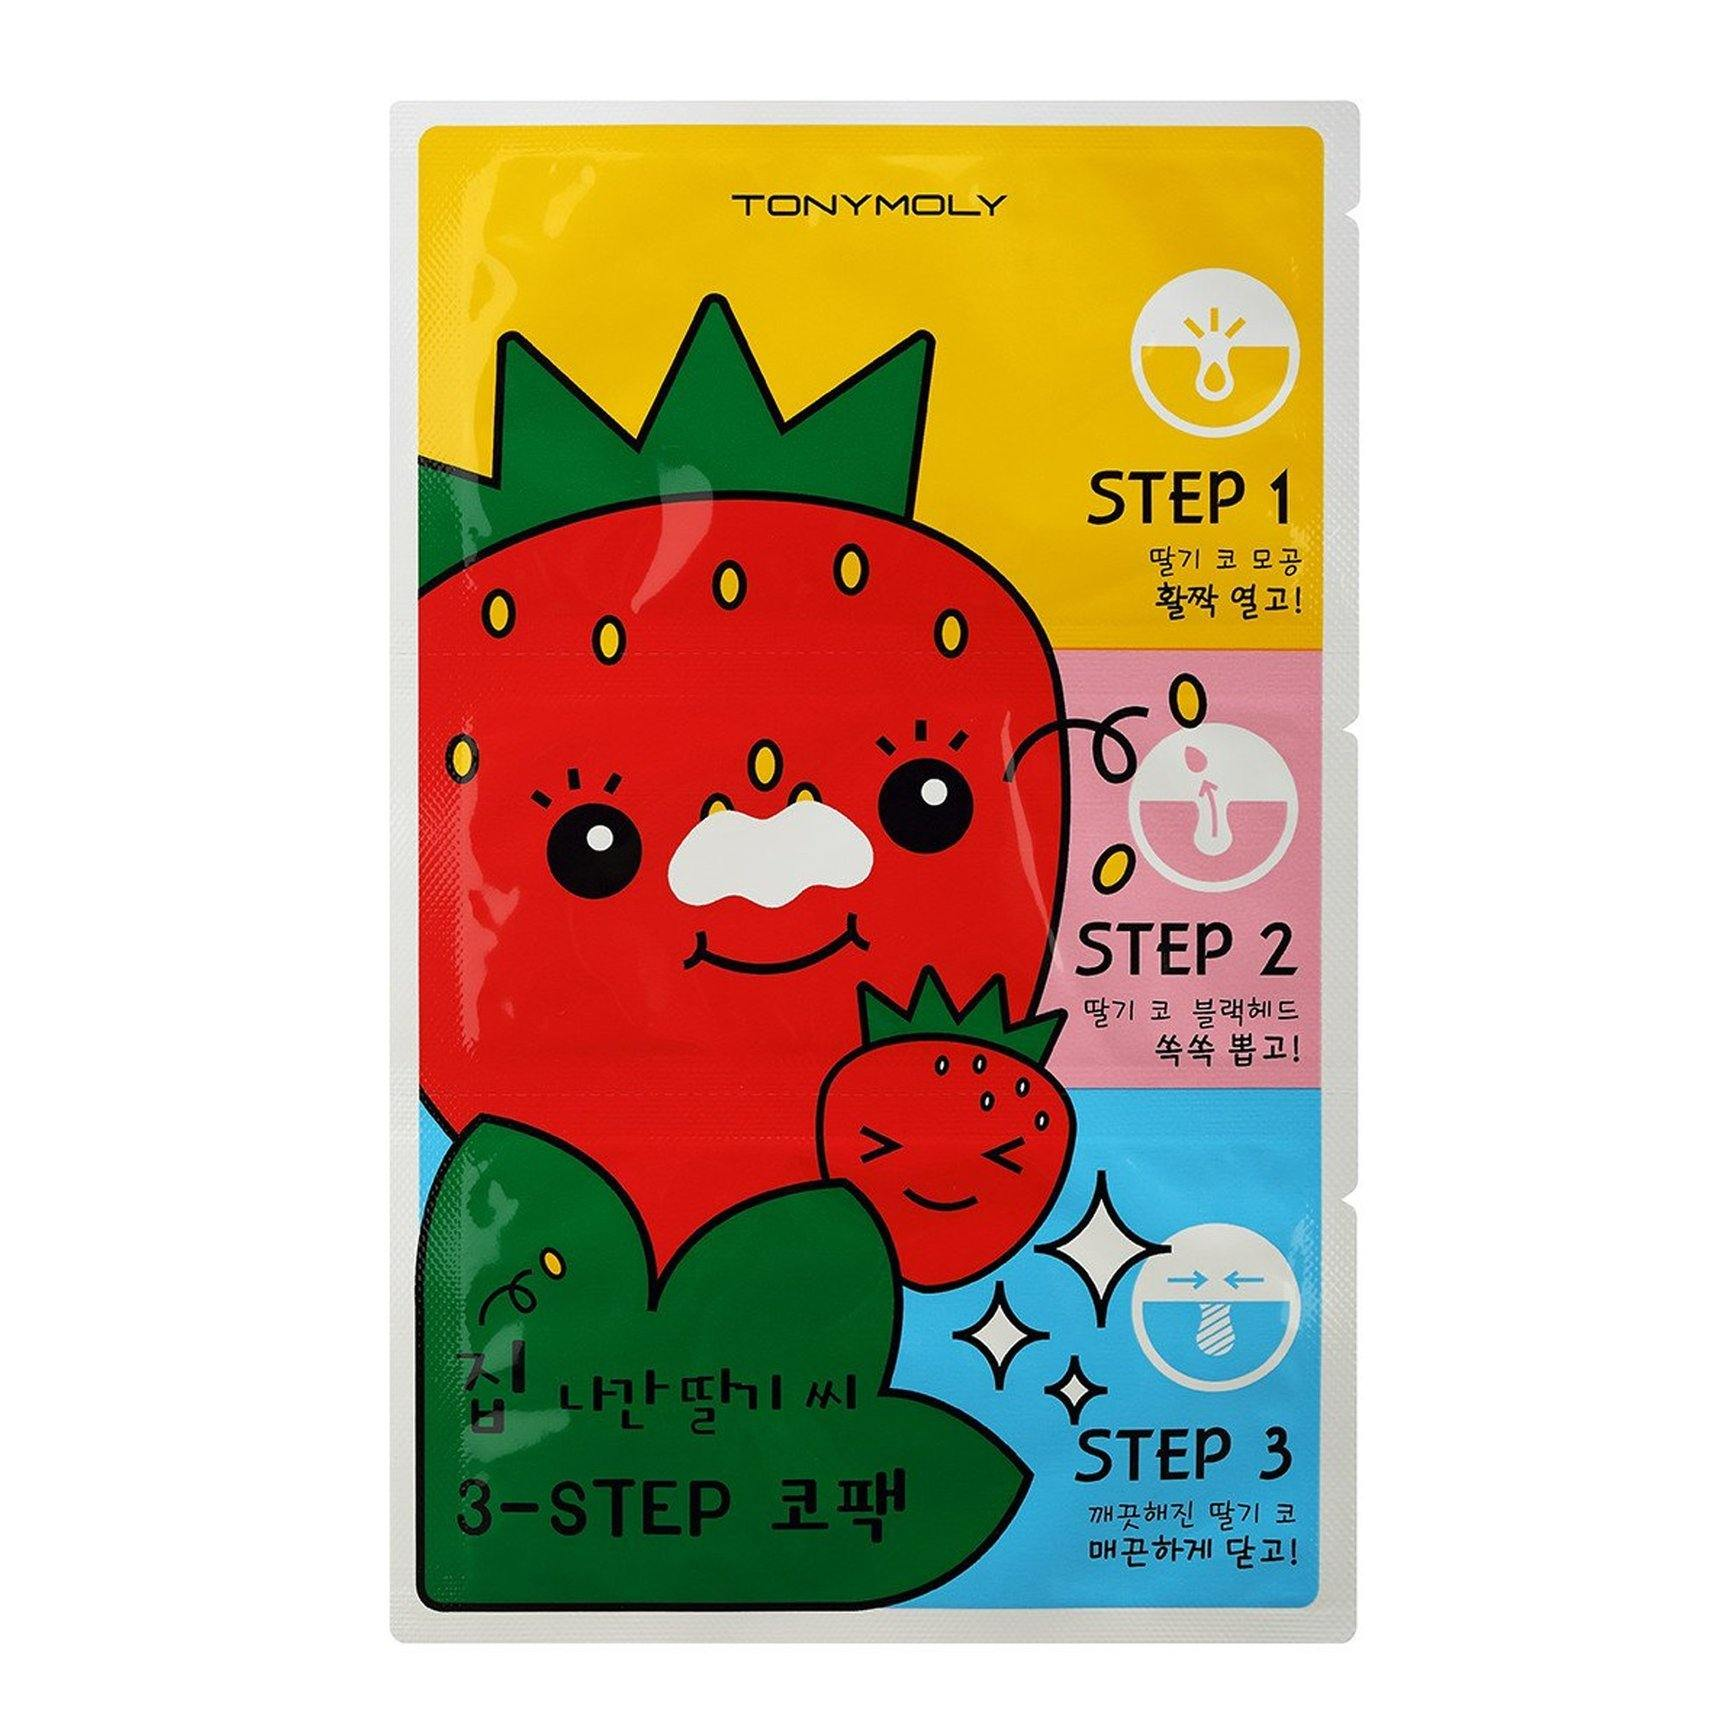 TONYMOLY Runaway Strawberry Seeds 3 Step Nose Pack - Peel Off Nose Strip ¦ Blackhead removal | Korean Skin Care